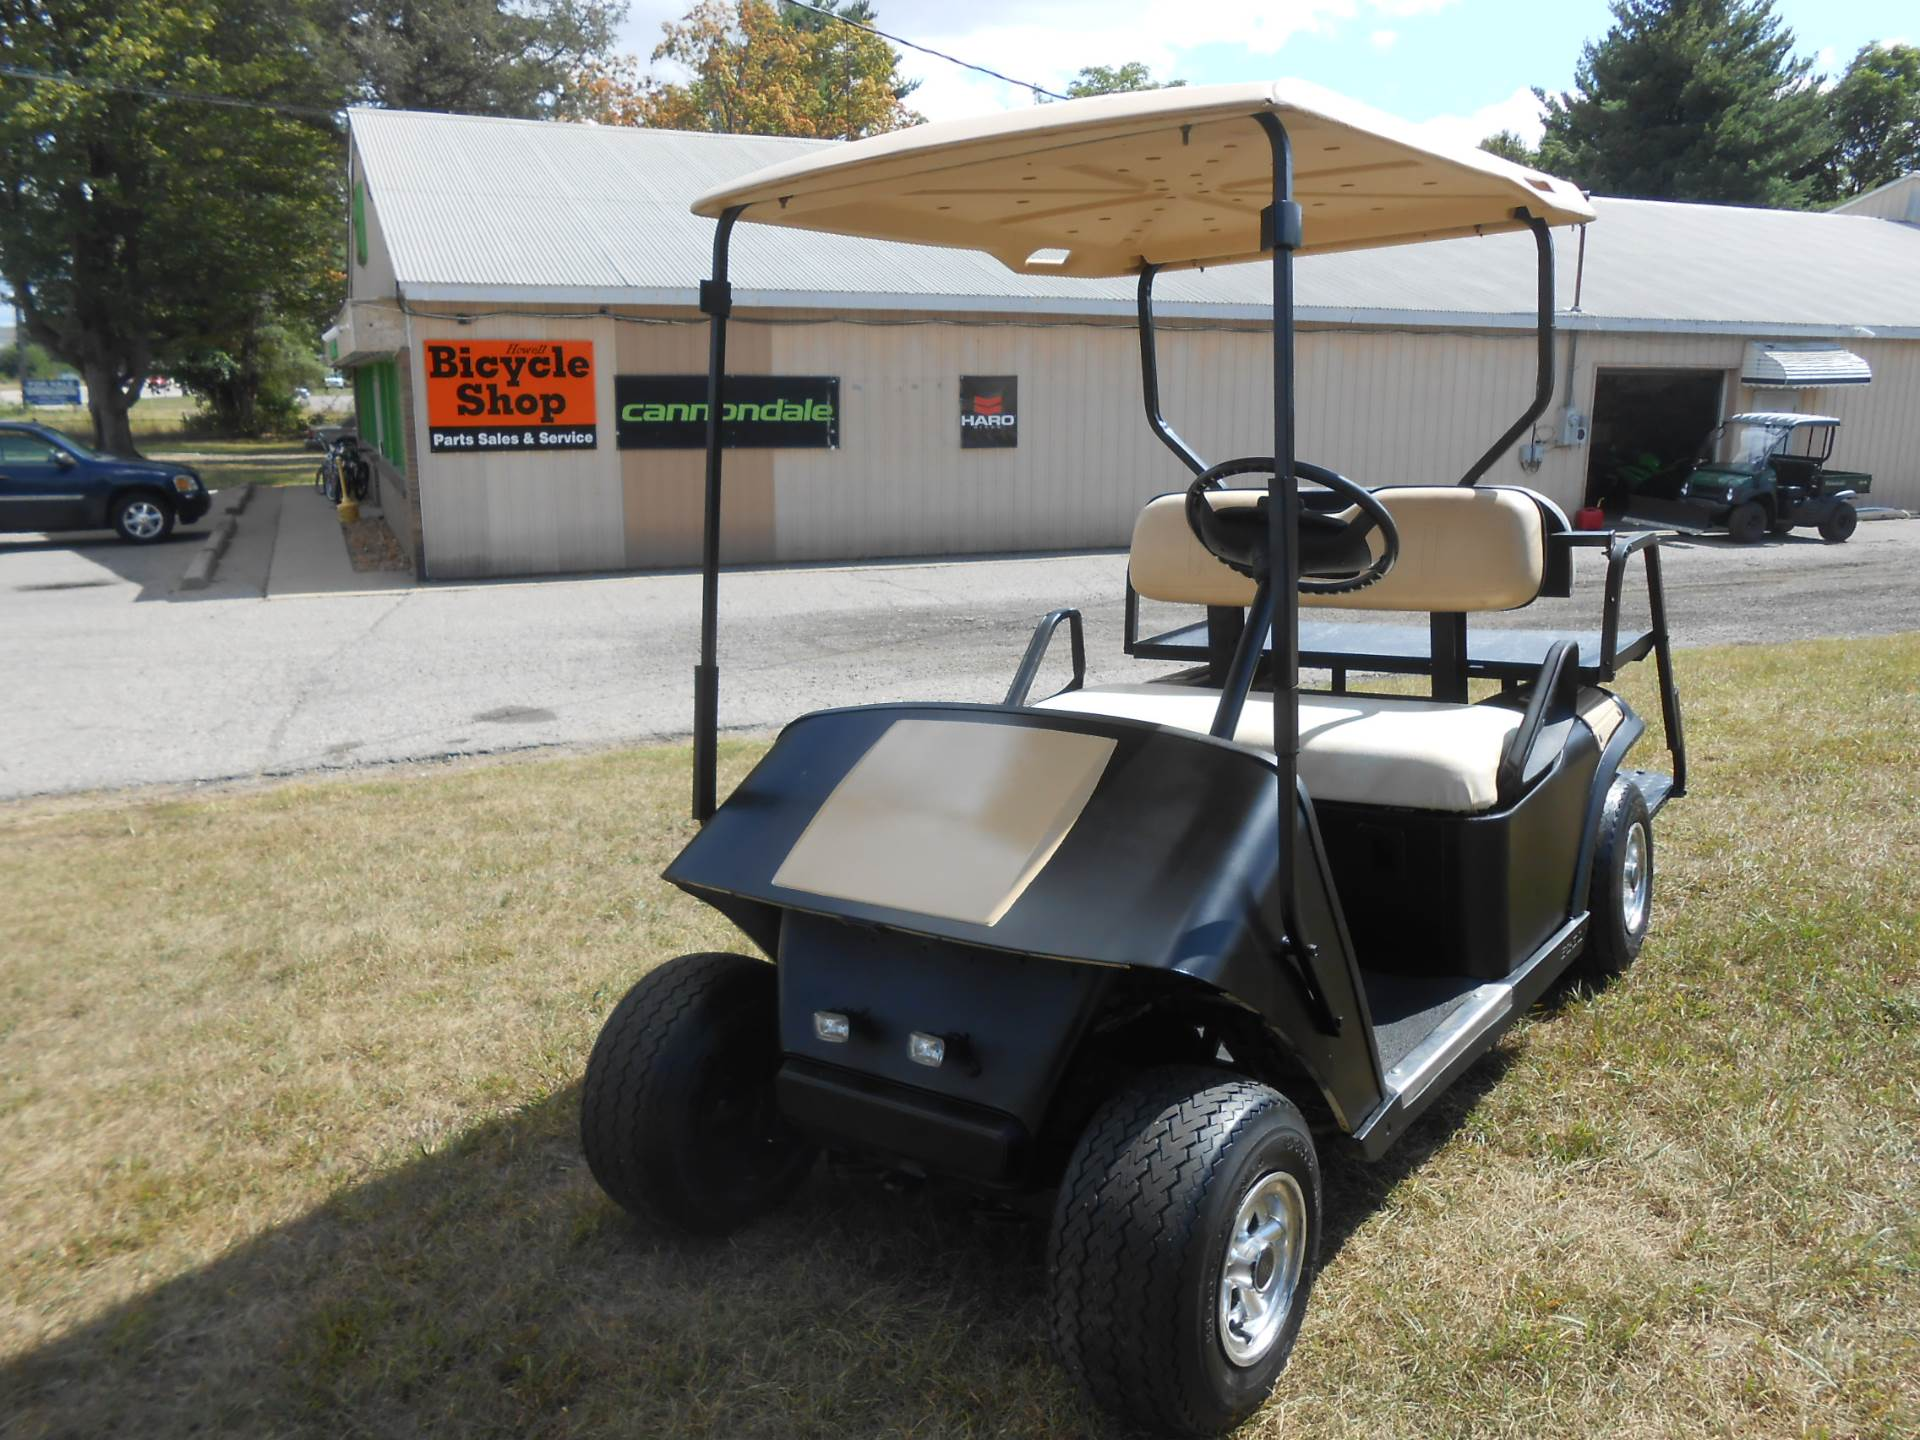 Used 1995 E-Z-Go Electric Medalist 36V Golf Carts in Howell, MI Medalist Golf Cart on capri golf cart, lincoln golf cart, marathon golf cart, bobcat golf cart, kelly golf cart, coleman golf cart, txt golf cart, villager golf cart, gold golf cart, catalina golf cart, maverick golf cart, cougar golf cart, ranger golf cart, columbia golf cart, champion golf cart, nike golf cart, renegade golf cart, eagle golf cart, classic golf cart, cyclone golf cart,